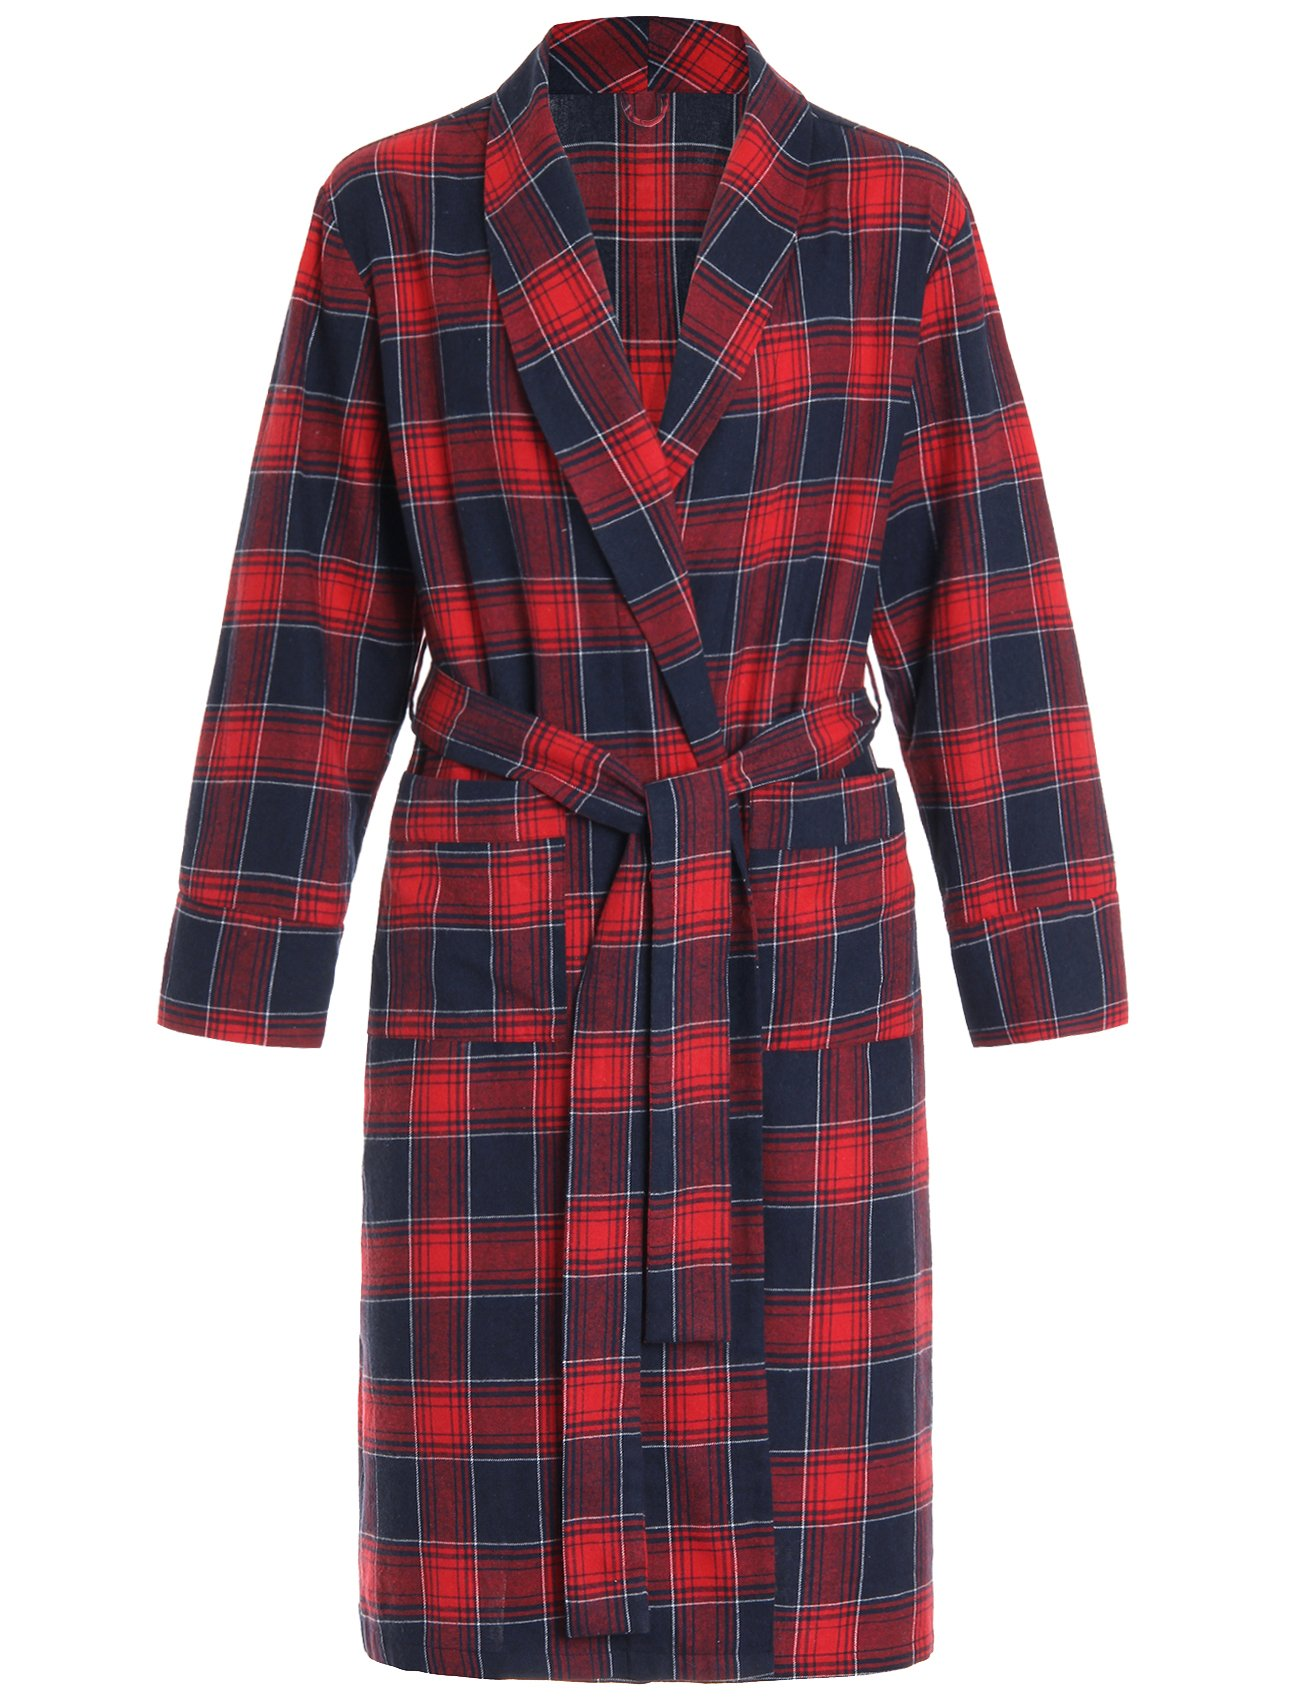 061e21c4af9a Details about Latuza Women s Plus Size Cotton Flannel Robe With Two Patch  Pockets